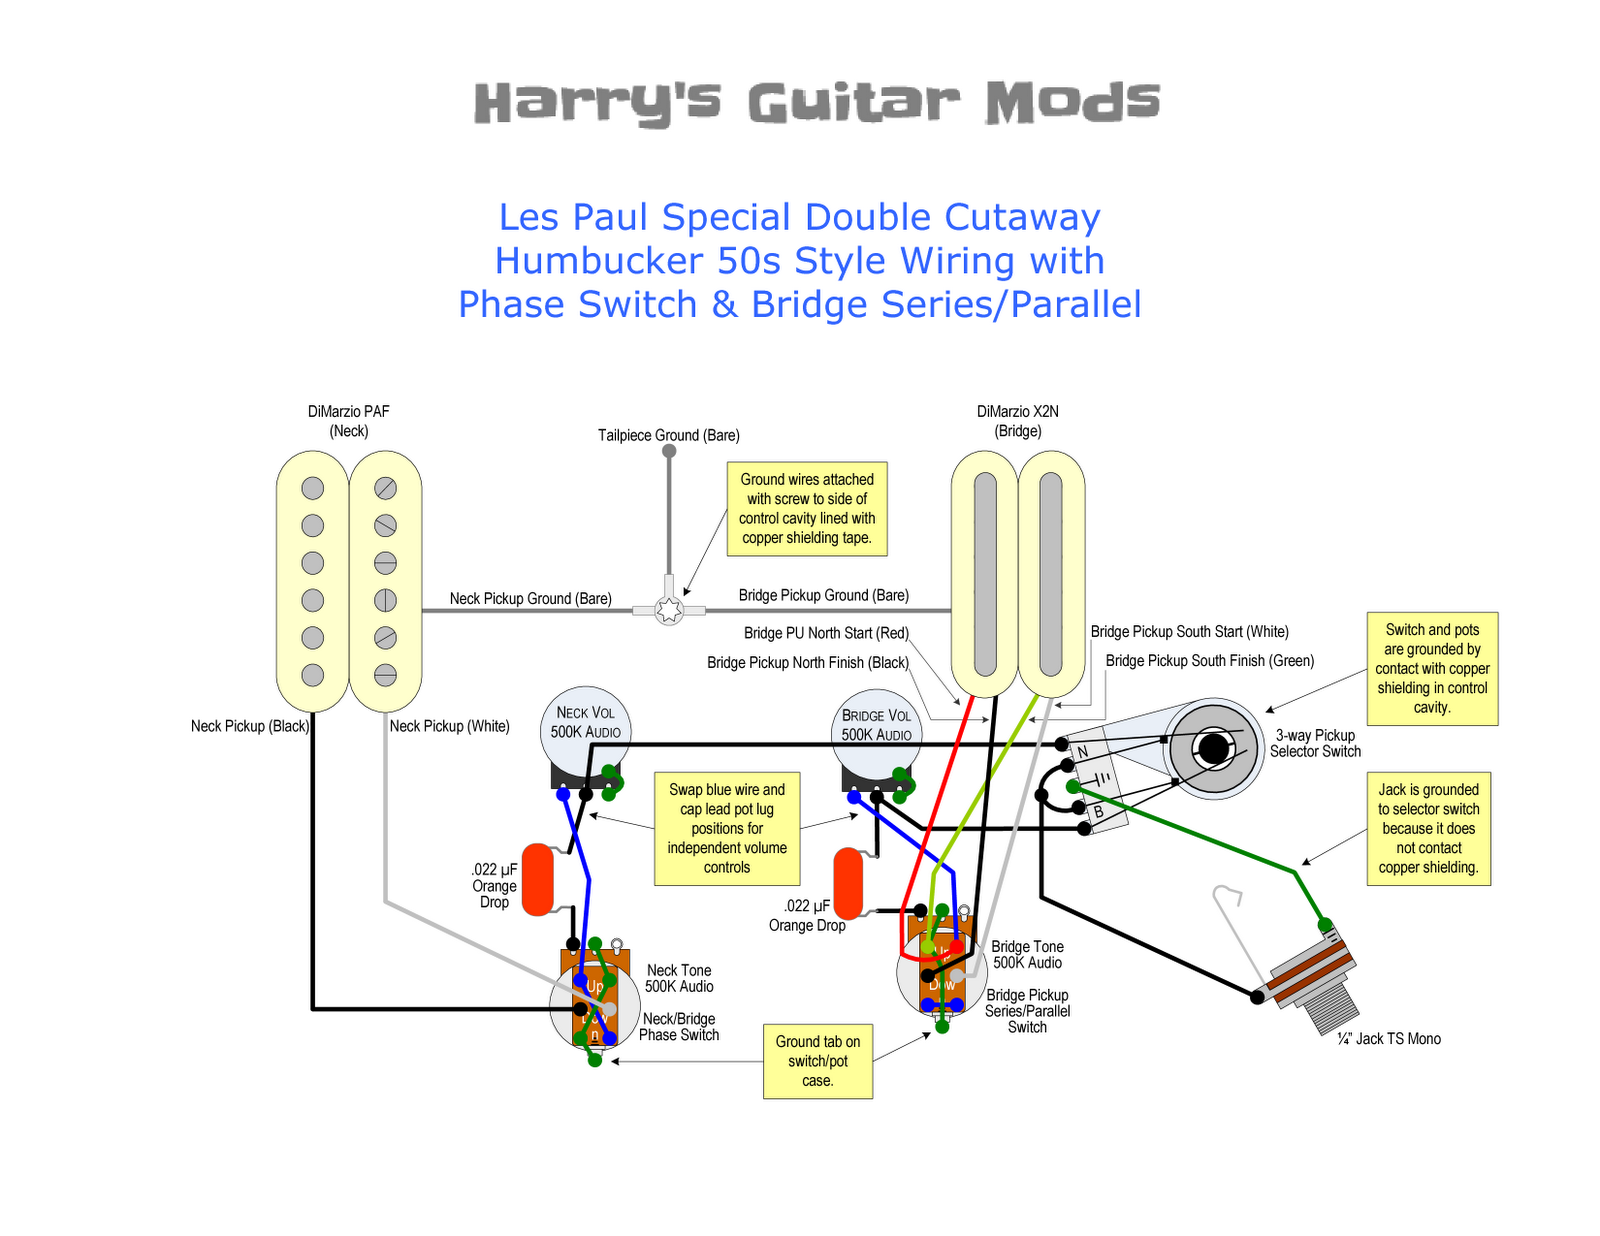 Les Paul Wiring Jig Real Diagram Classic Harry S Guitar Mods Controls Upgrade Rh Hgmods Com